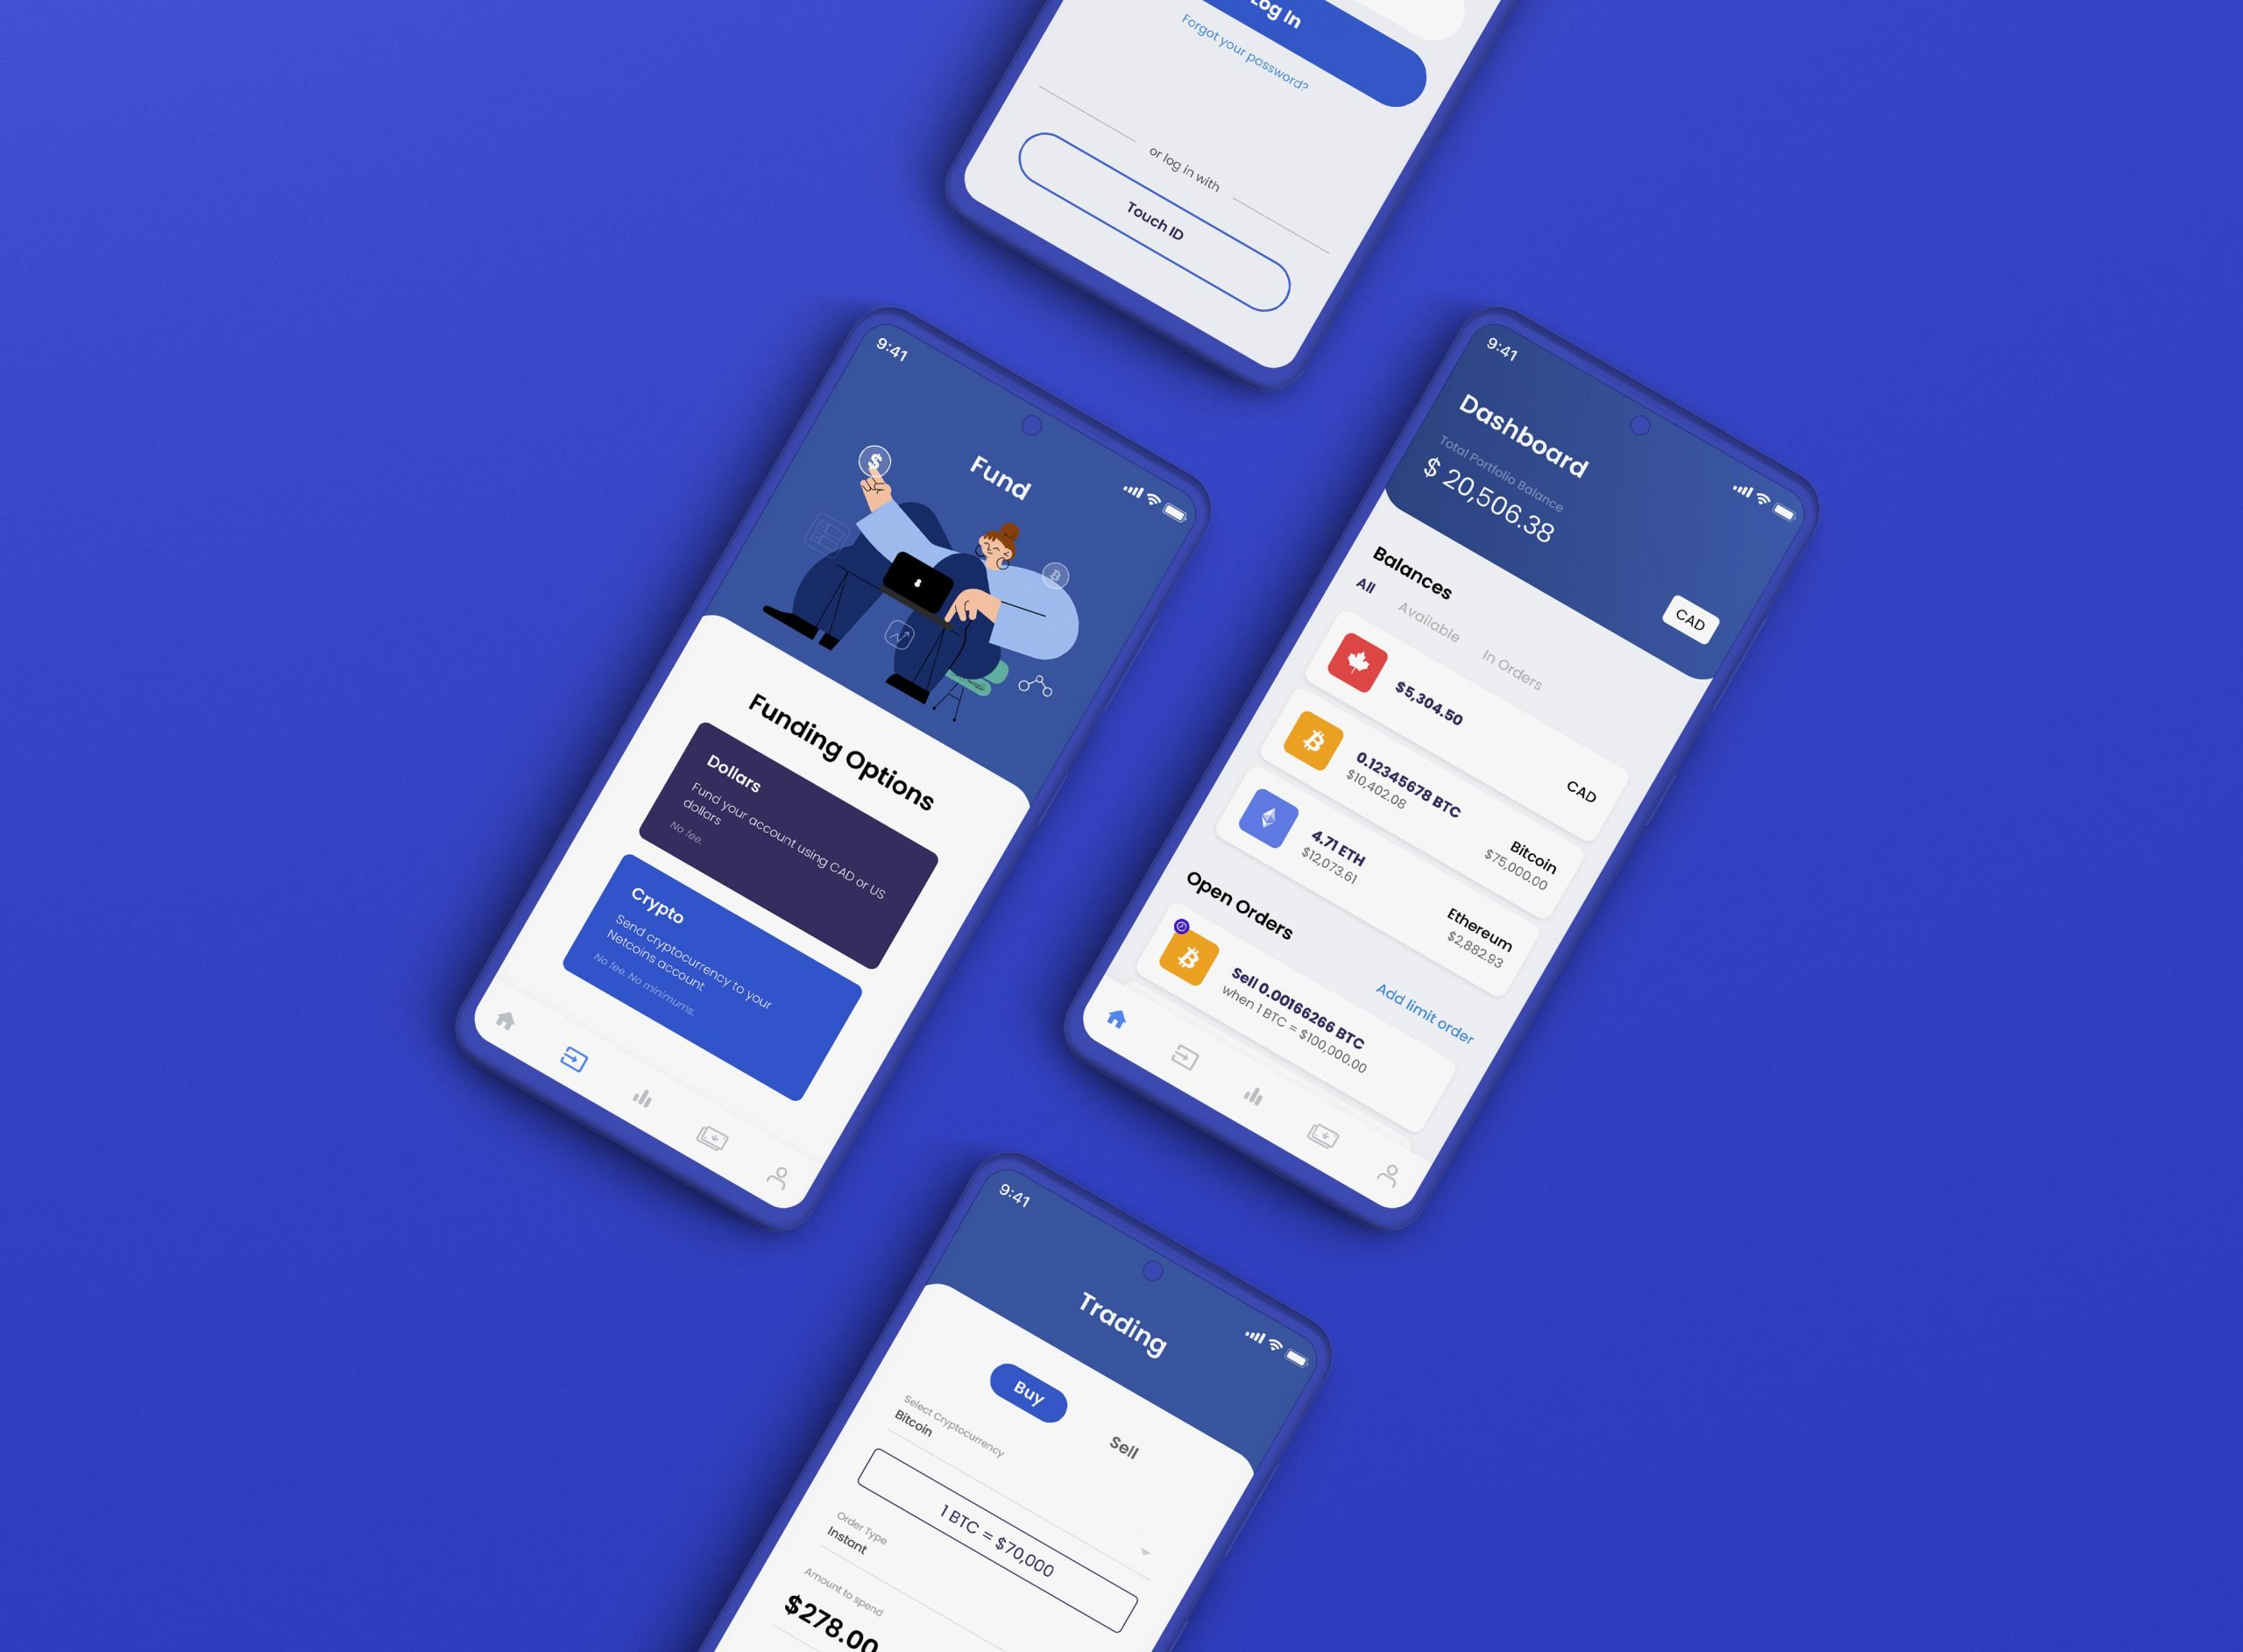 Netcoins Mobile App - Dashboard, Funding & Trading